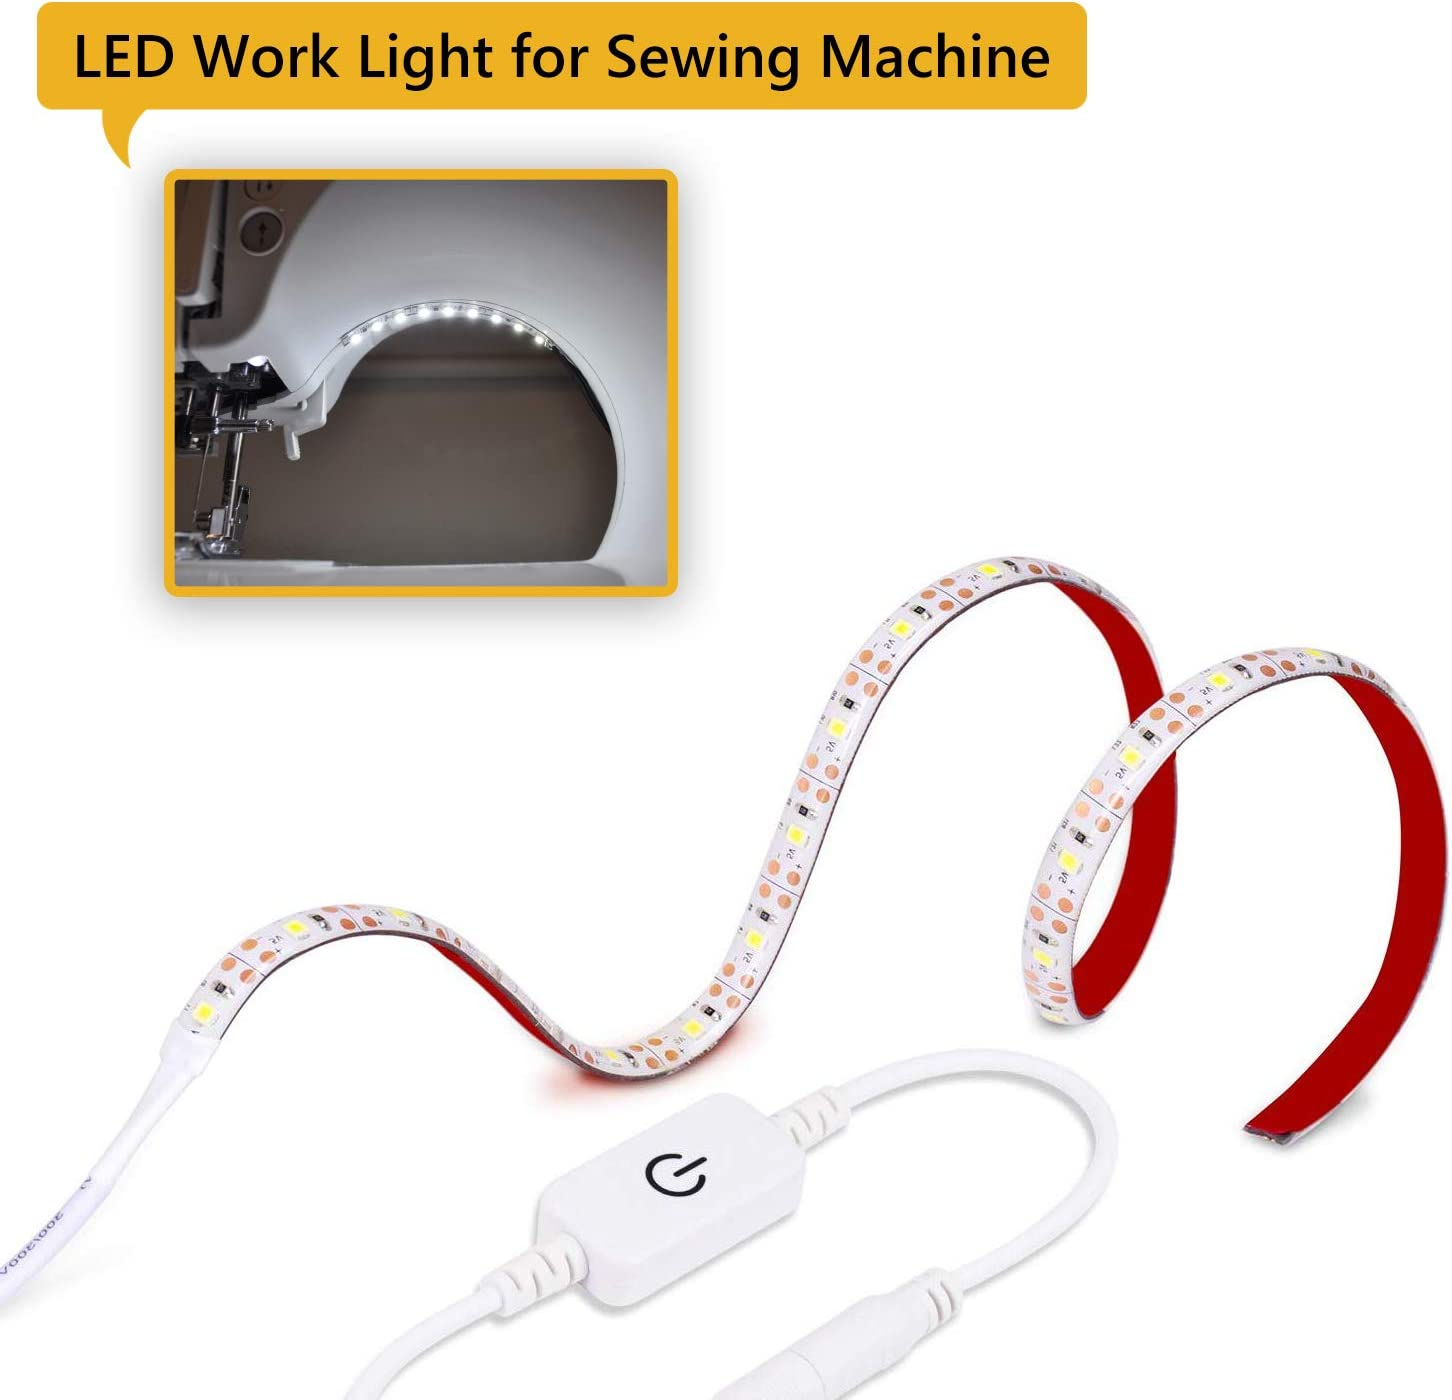 Baby Cribs Kitchen Cabinet Sewing Machine Light Strip,11.4 inch LED Strip Lights 18 LEDs Sewing Work Light Kit with Touch Dimmer,5V USB Power and Adhesive Clips,Fits All Sewing Machines